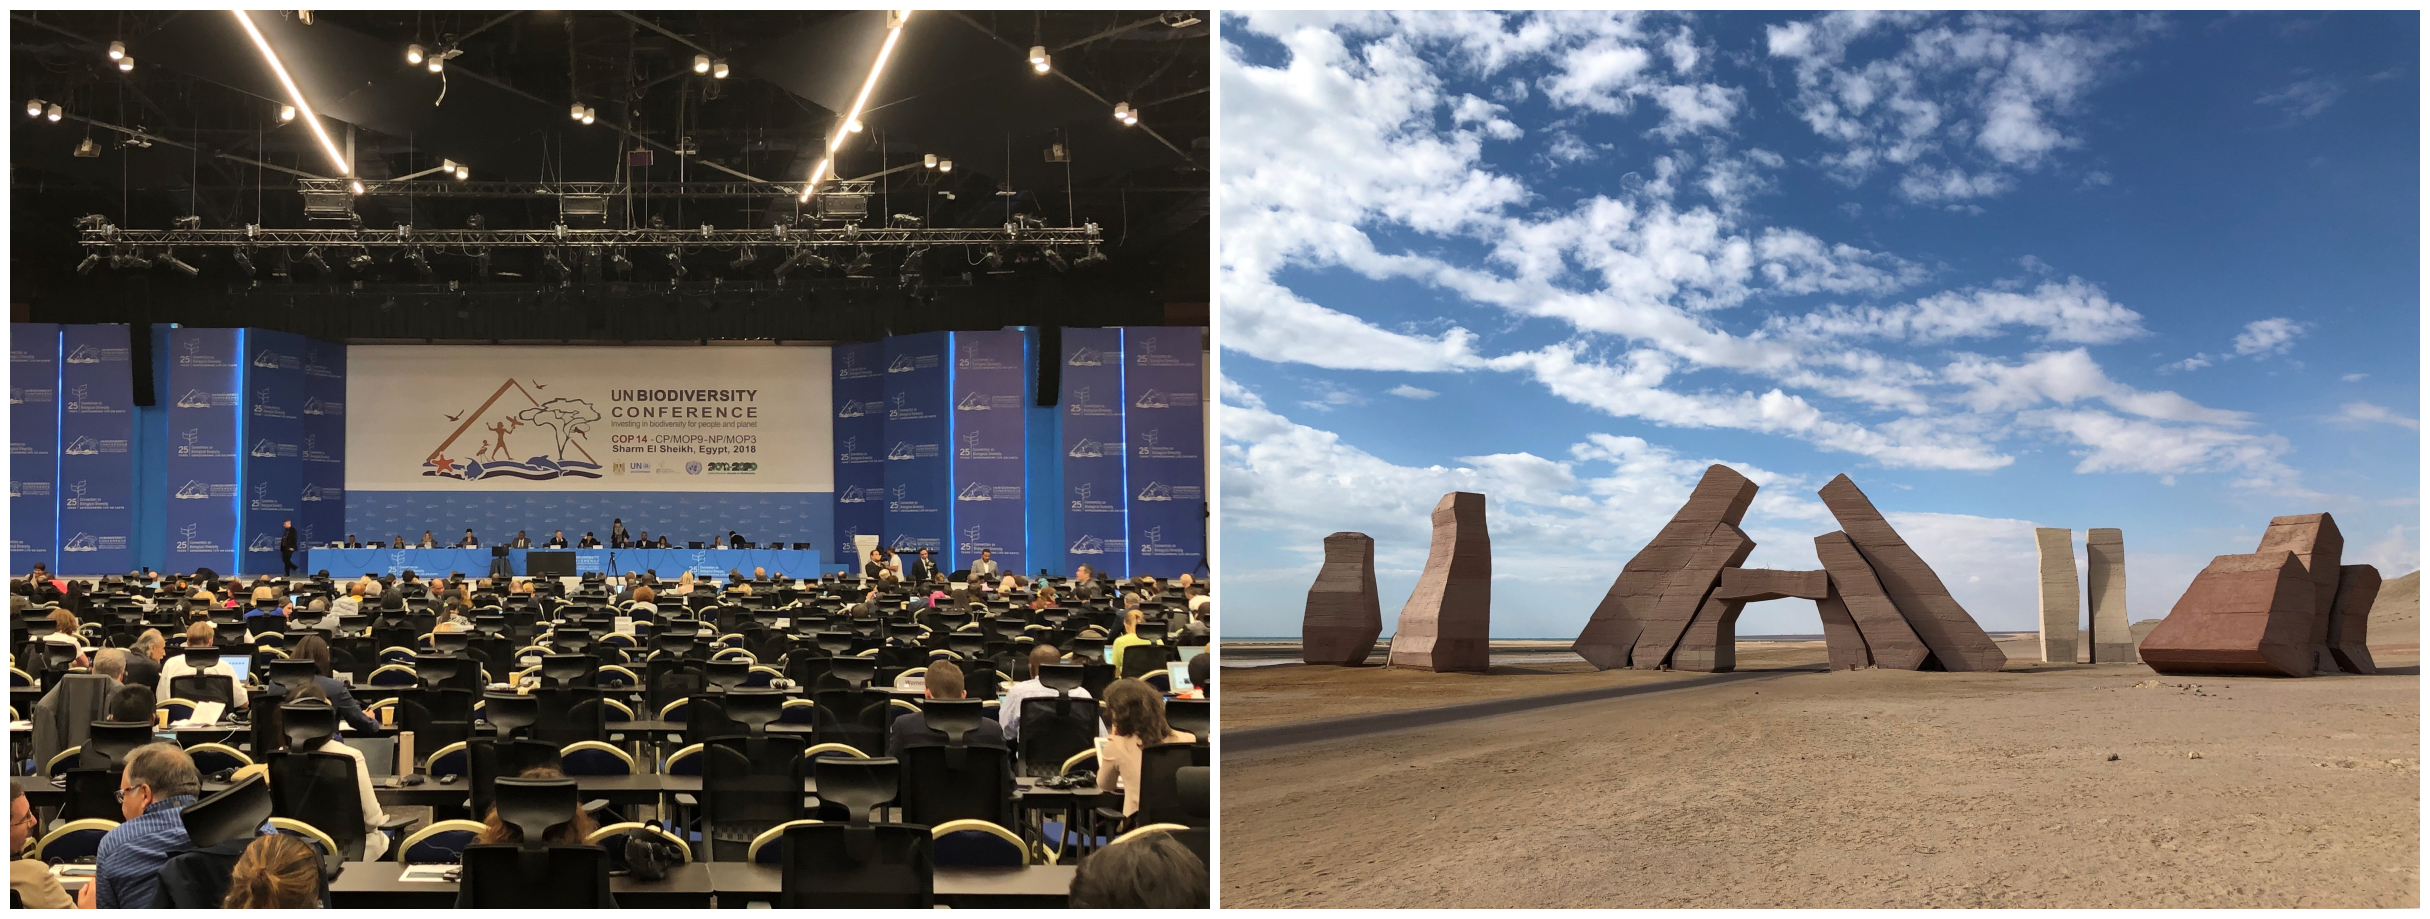 Images of United Nations biodiversity conference in Sharm El Sheikh, Egypt and Ras Mohammed National Park